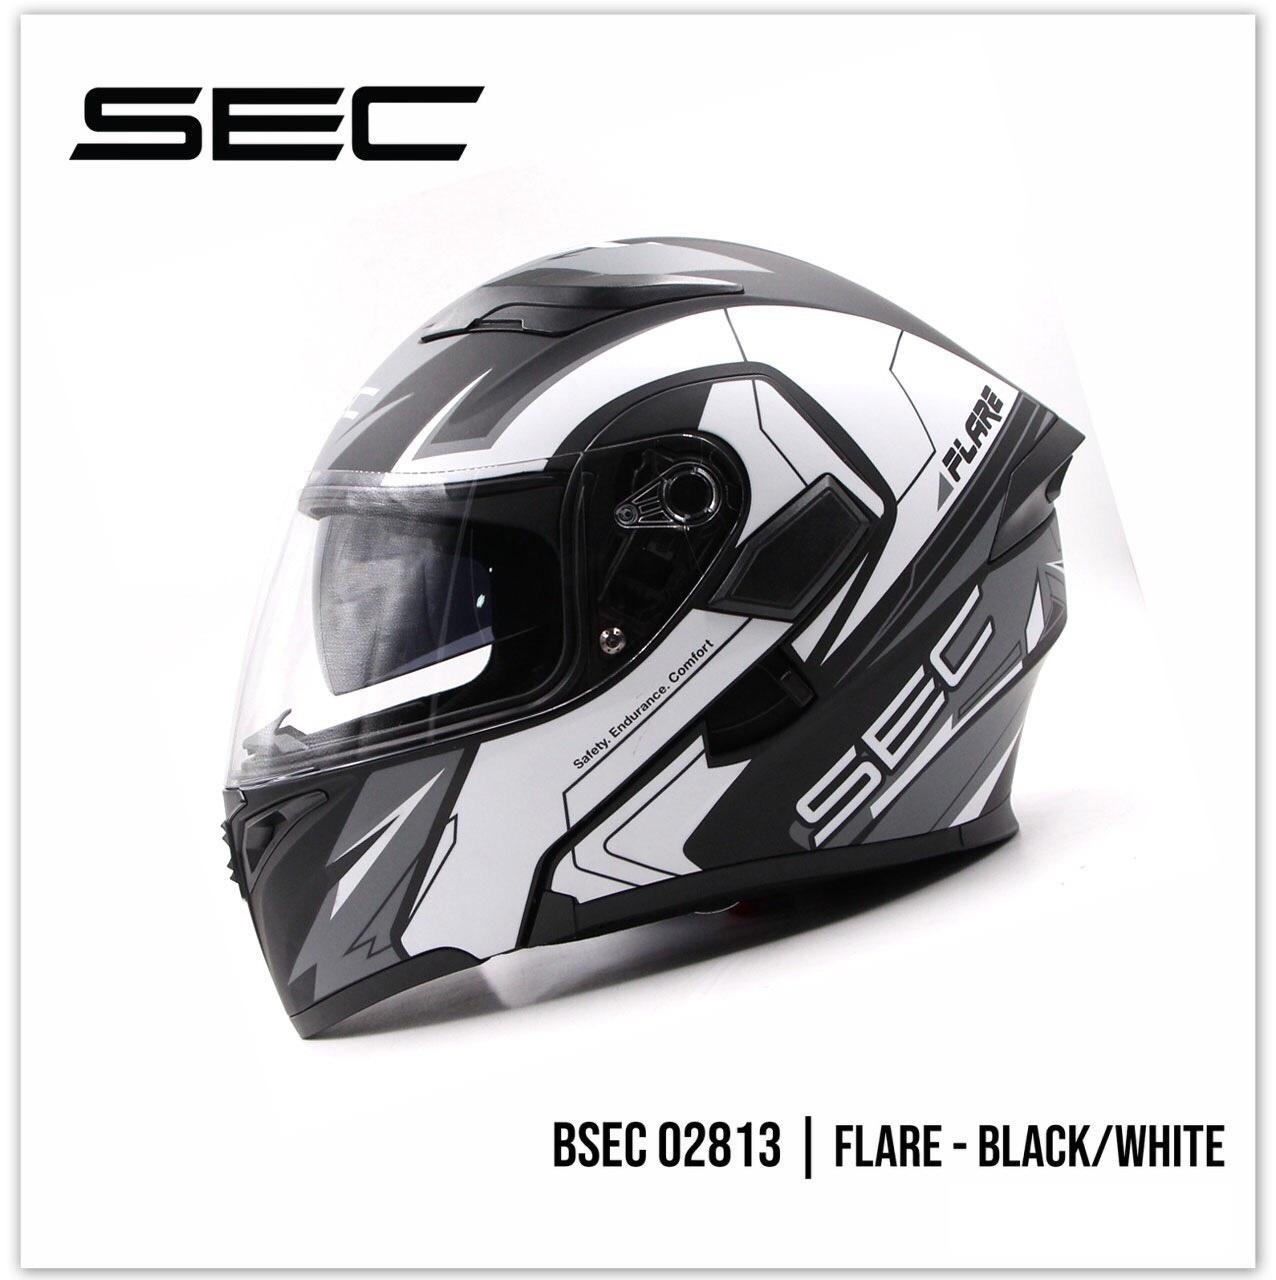 674ed796 Sec Helmets Philippines - Sec Motorcycle Helmets for sale - prices ...